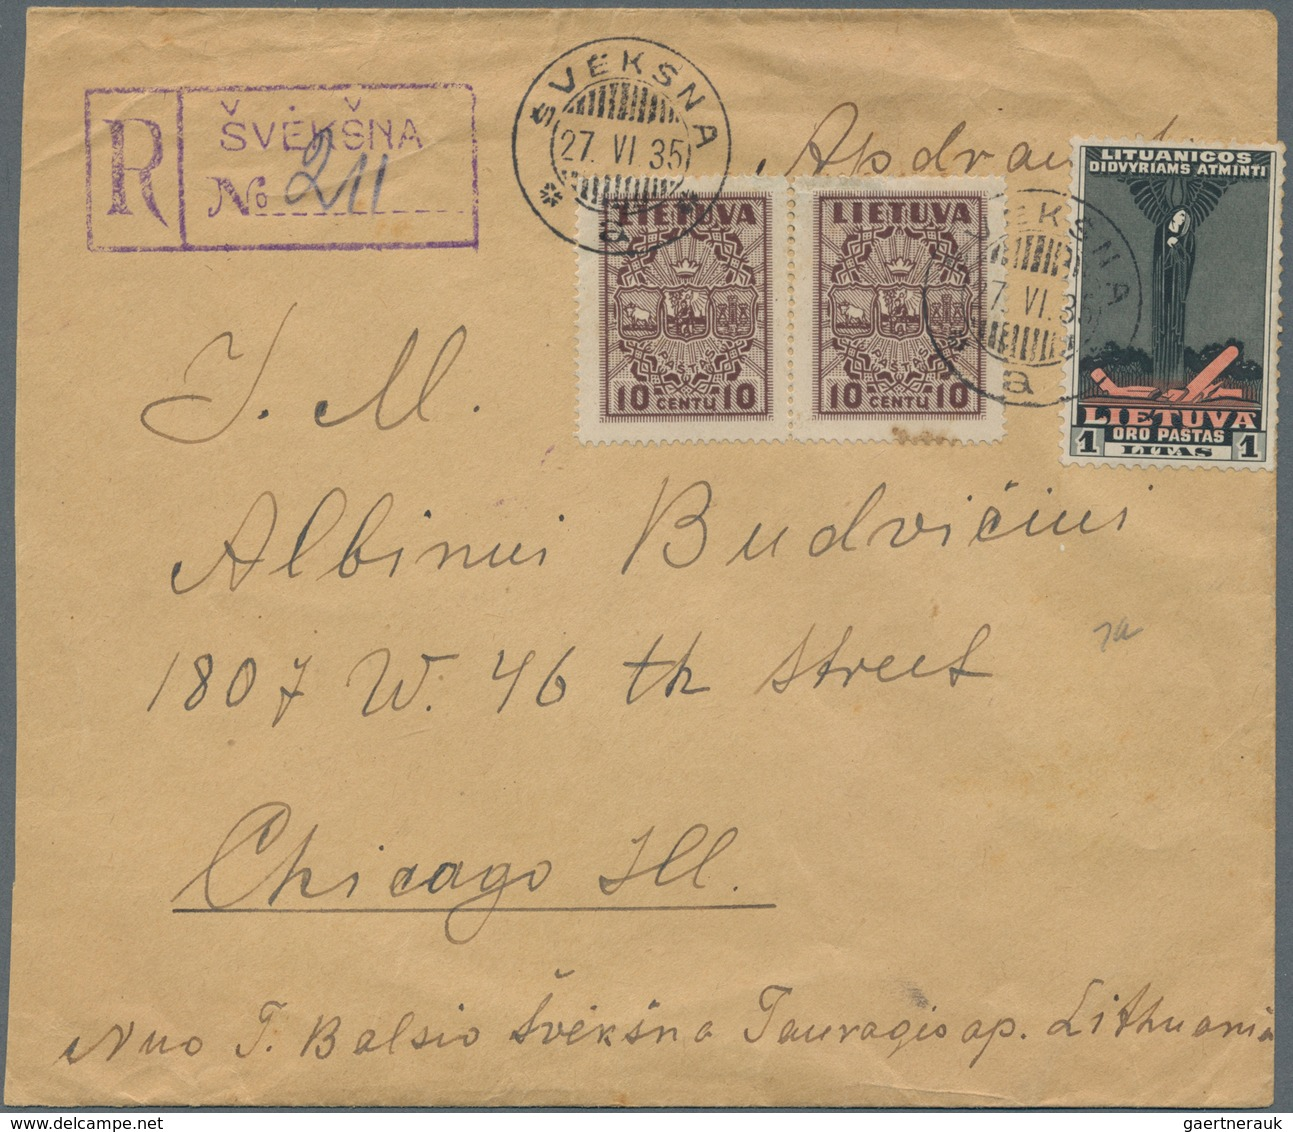 Lettland: 1935, Registered Cover, Left Side Shortend, To Chicago, ILL., Franked 10c Chocolate (SG 40 - Lettland